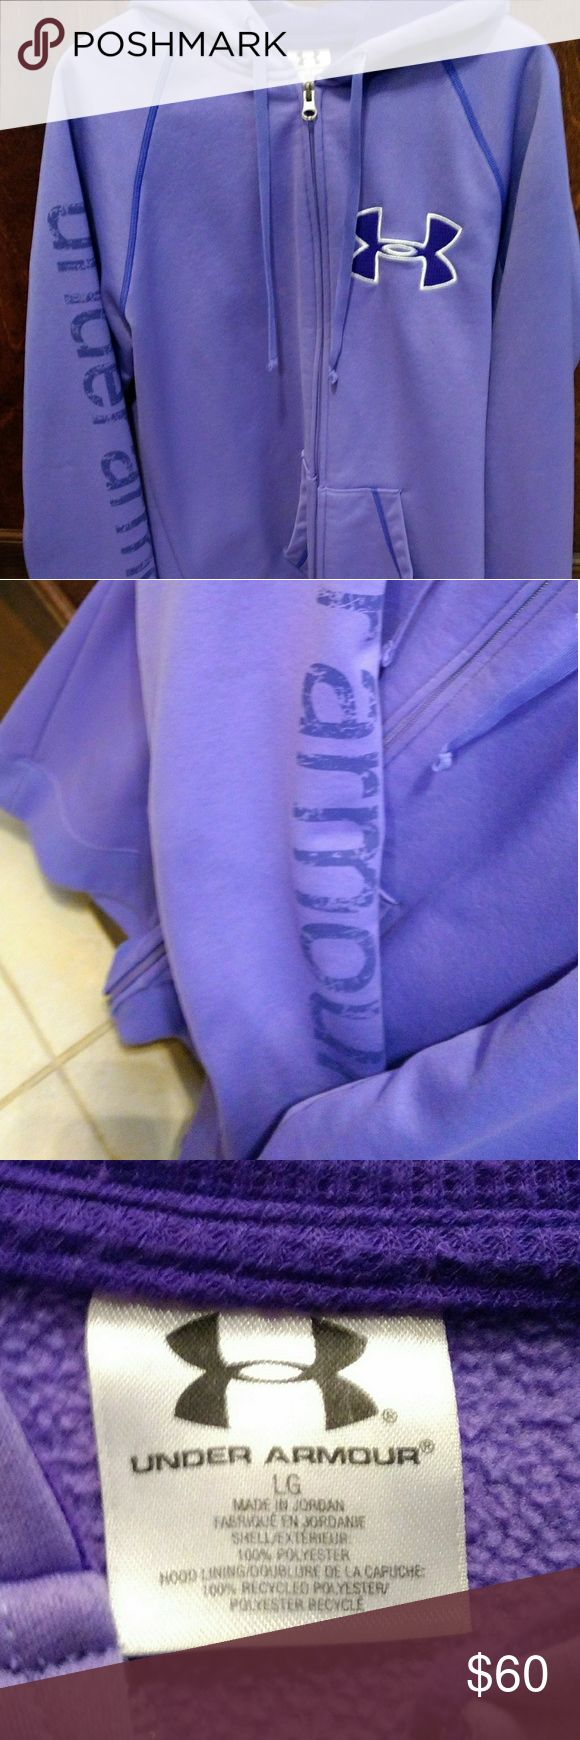 Under Armour Women's Purple Hoodie Authentic UA💜. Comfortable Zip Up with Hood!  Under Armour on Right Arm. Logo to Front Left 💕 Great Condition 💮 Under Armour Tops Sweatshirts & Hoodies